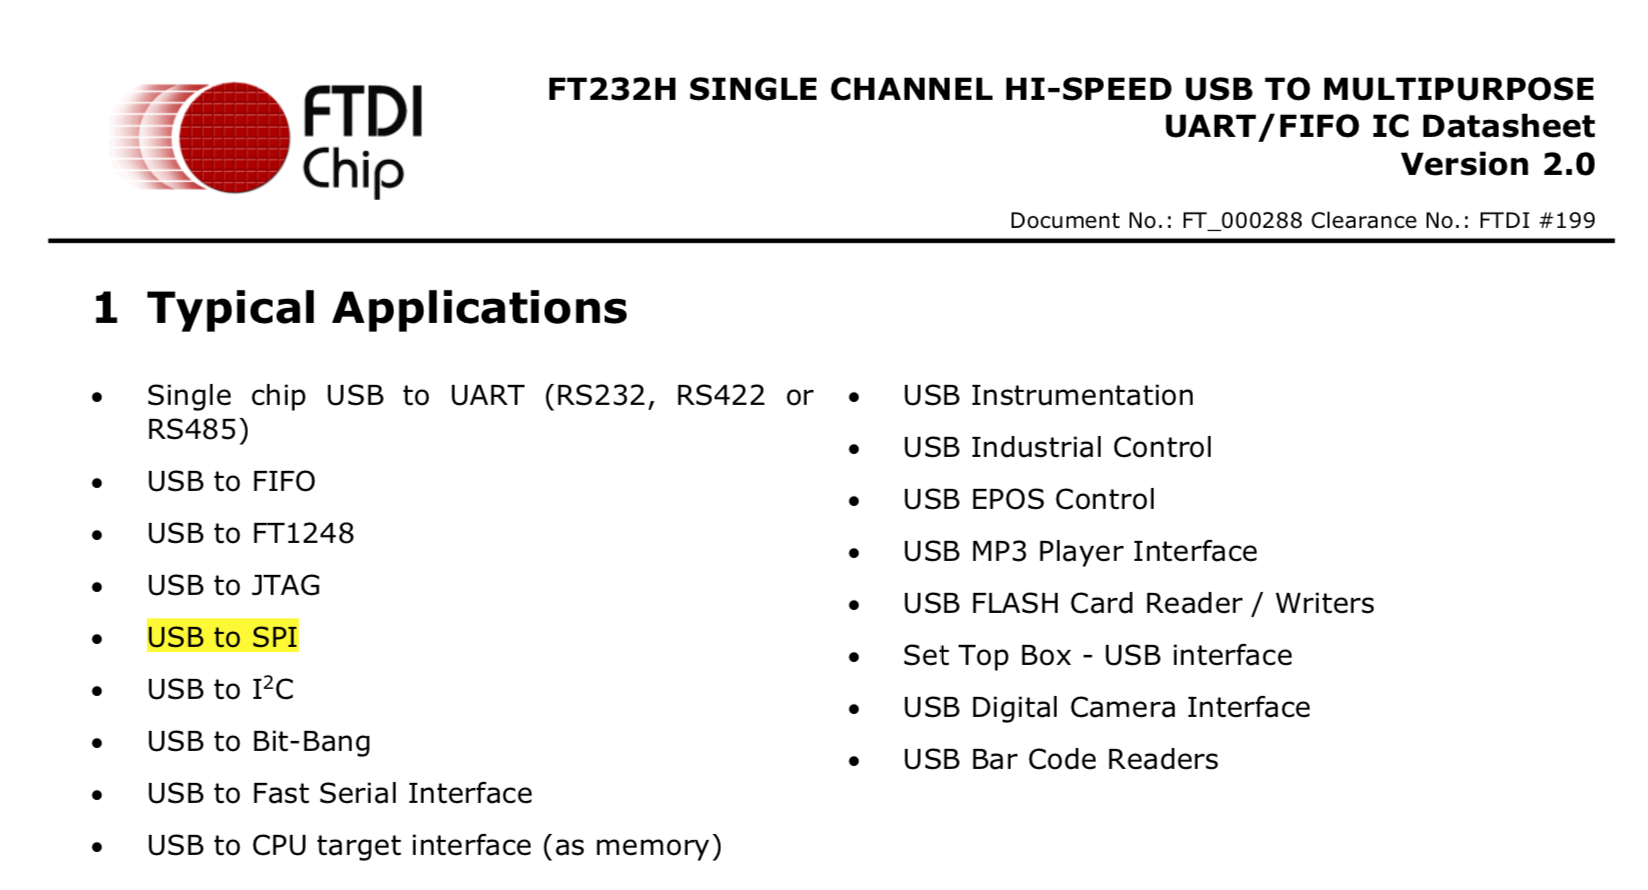 Capture of the FT232H datasheet mentioning SPI capabilities